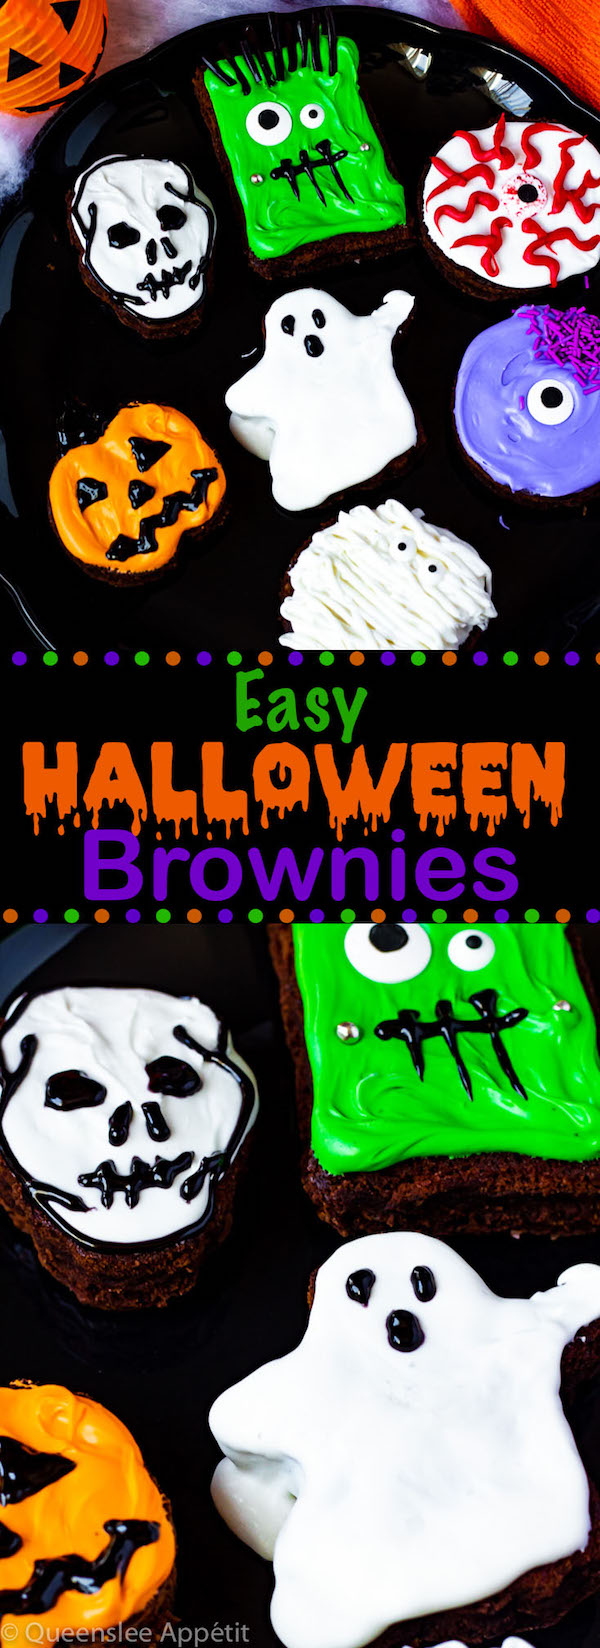 These Halloween Brownies are an easy, fun and festive treat. Serve these spooky sweets at a Halloween party, class party or wrap them up individually and hand out to friends and neighbours!